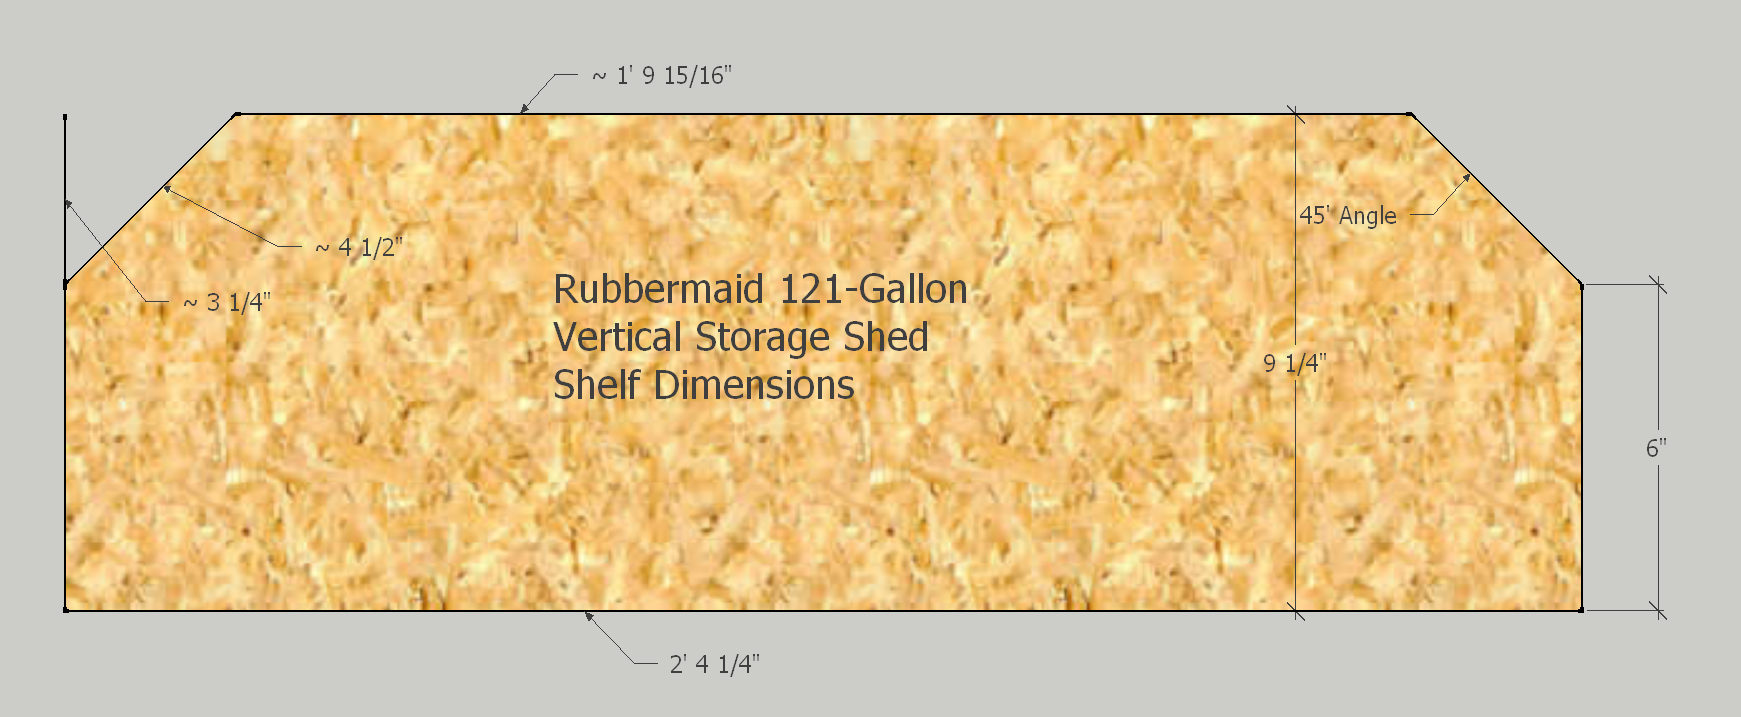 Rubbermaid 121 Gallon Vertical Storage Shed Reviews And